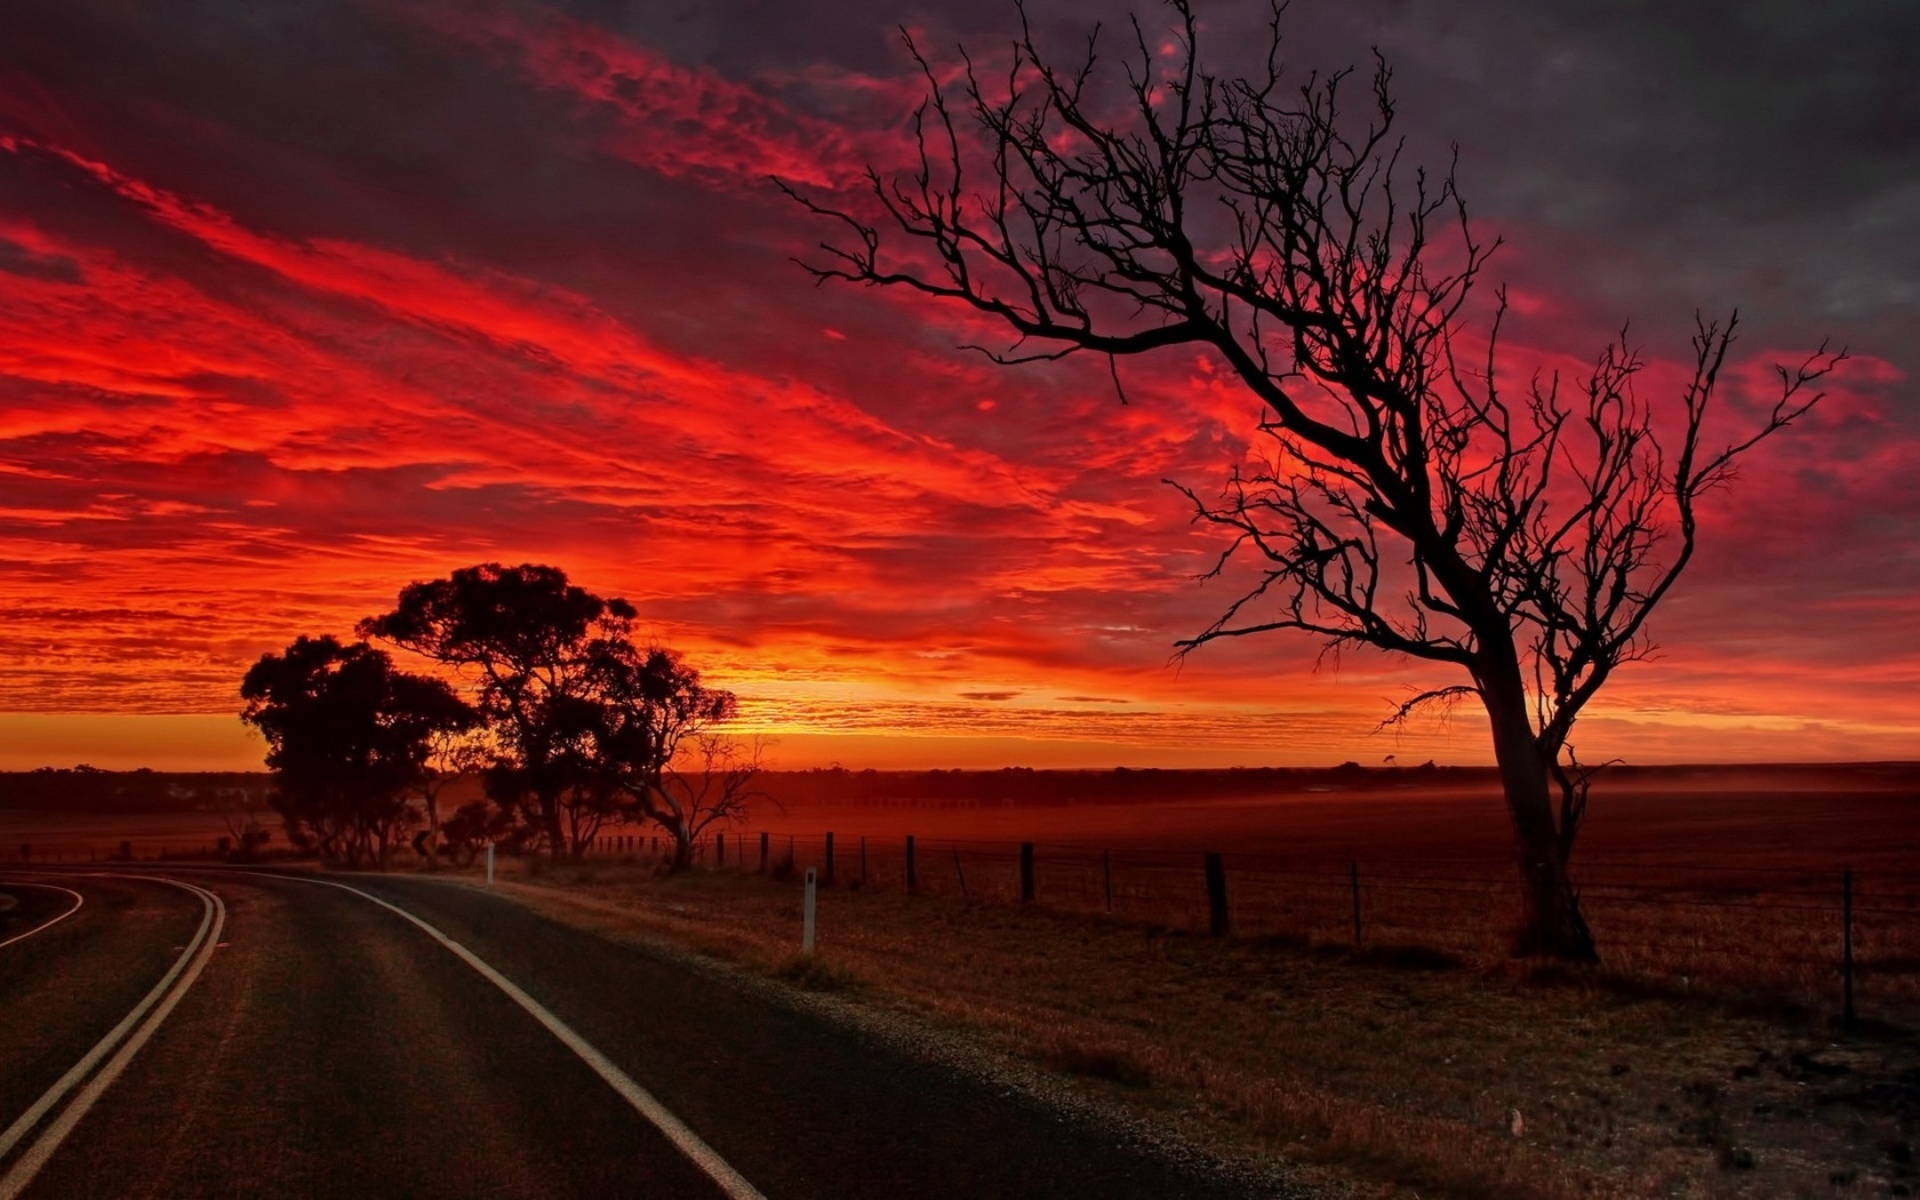 Red Sunset Road Trees Field Wallpapers Red Sunset Road Trees Field Stock Photos